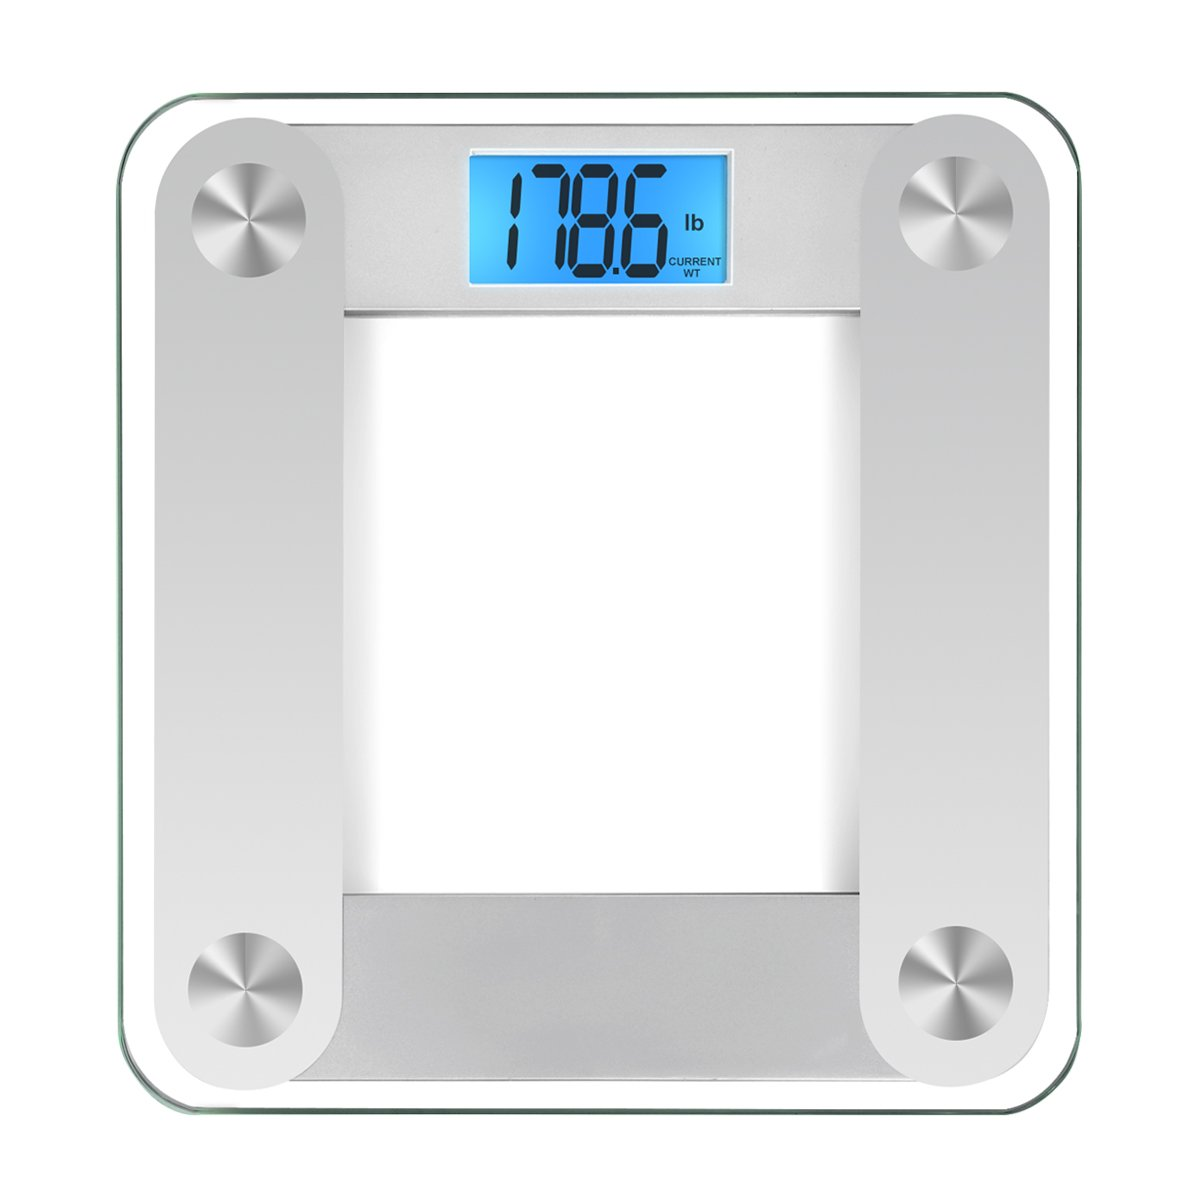 Batteries for bathroom scales - Amazon Com Amir Digital Body Weight Scale 400lb 180kg Precision Electronic Bathroom Scale With Large Lcd Display 3 Units Auto Calibrated Auto Off